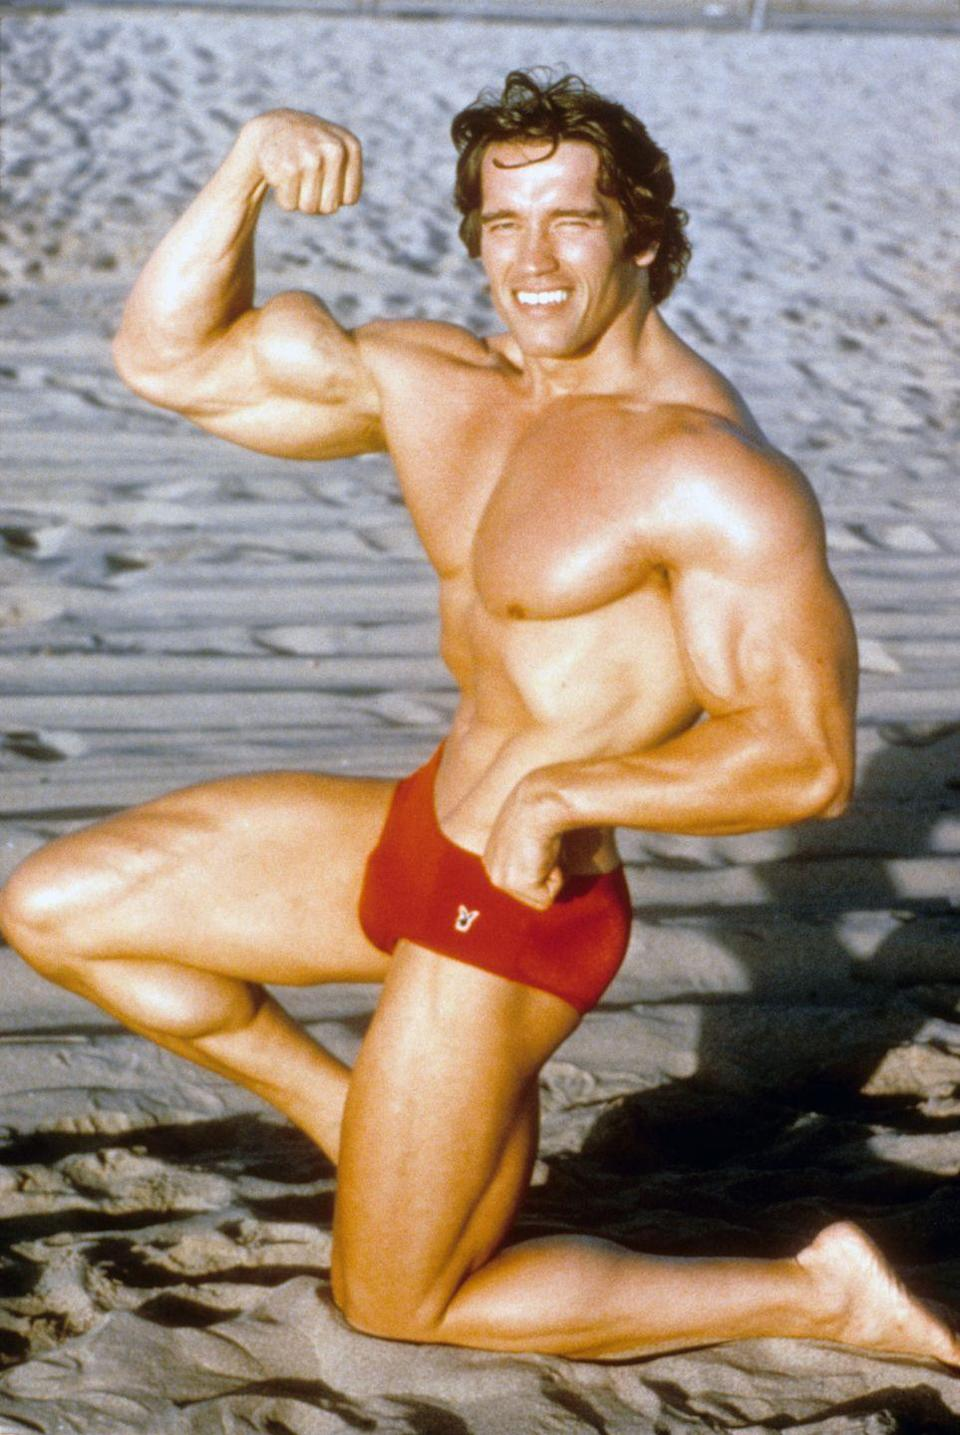 <p>In the '70s, Arnold Schwarzenegger made a name for himself as a professional <del>flexer</del> bodybuilder. He'd soon turn his hard work into box office gold as the star of <em>The Terminator.</em></p>